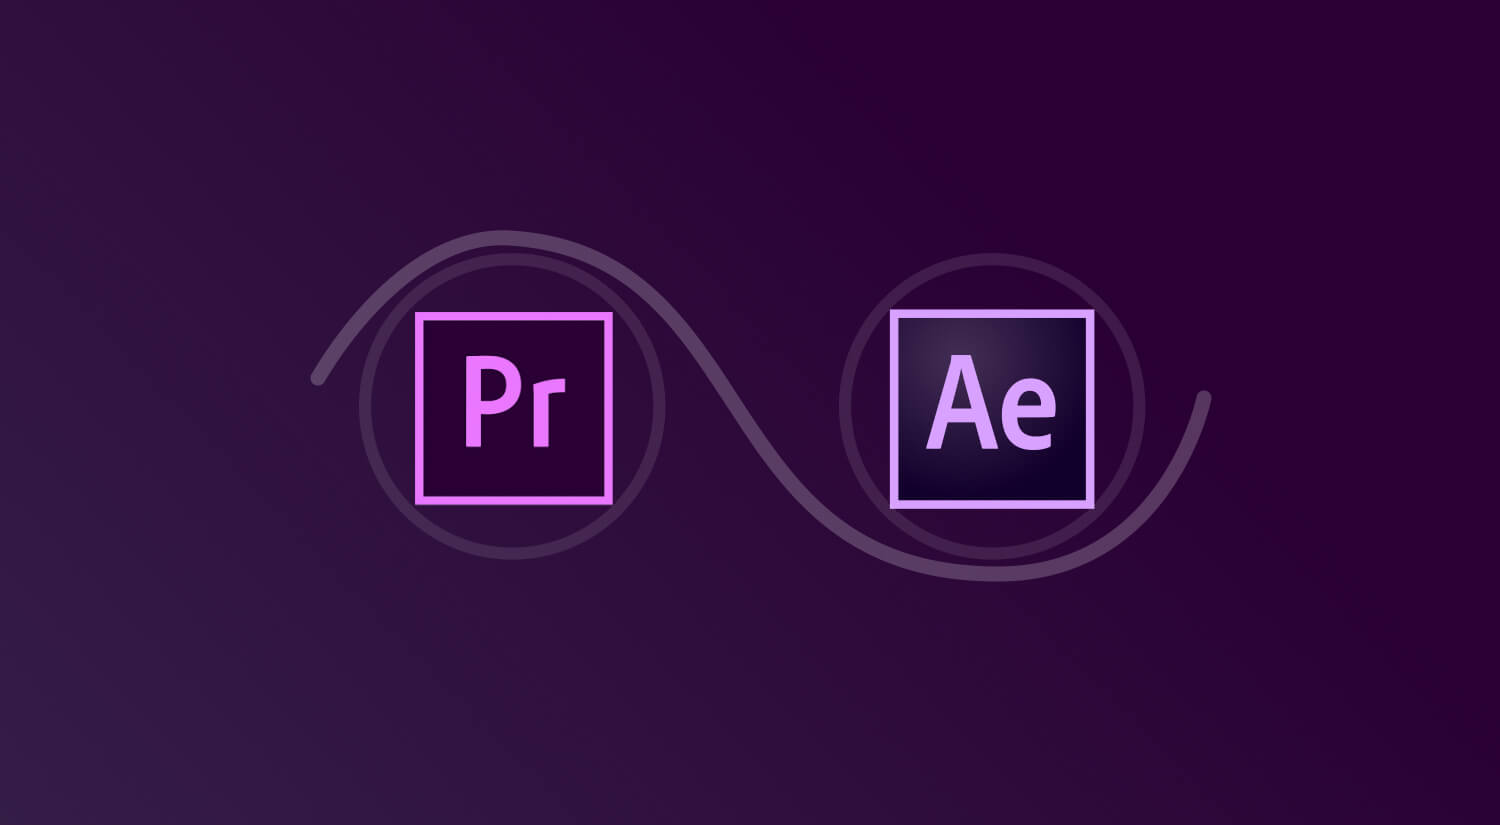 5 ways to connect Premiere Pro and After Effects - Video